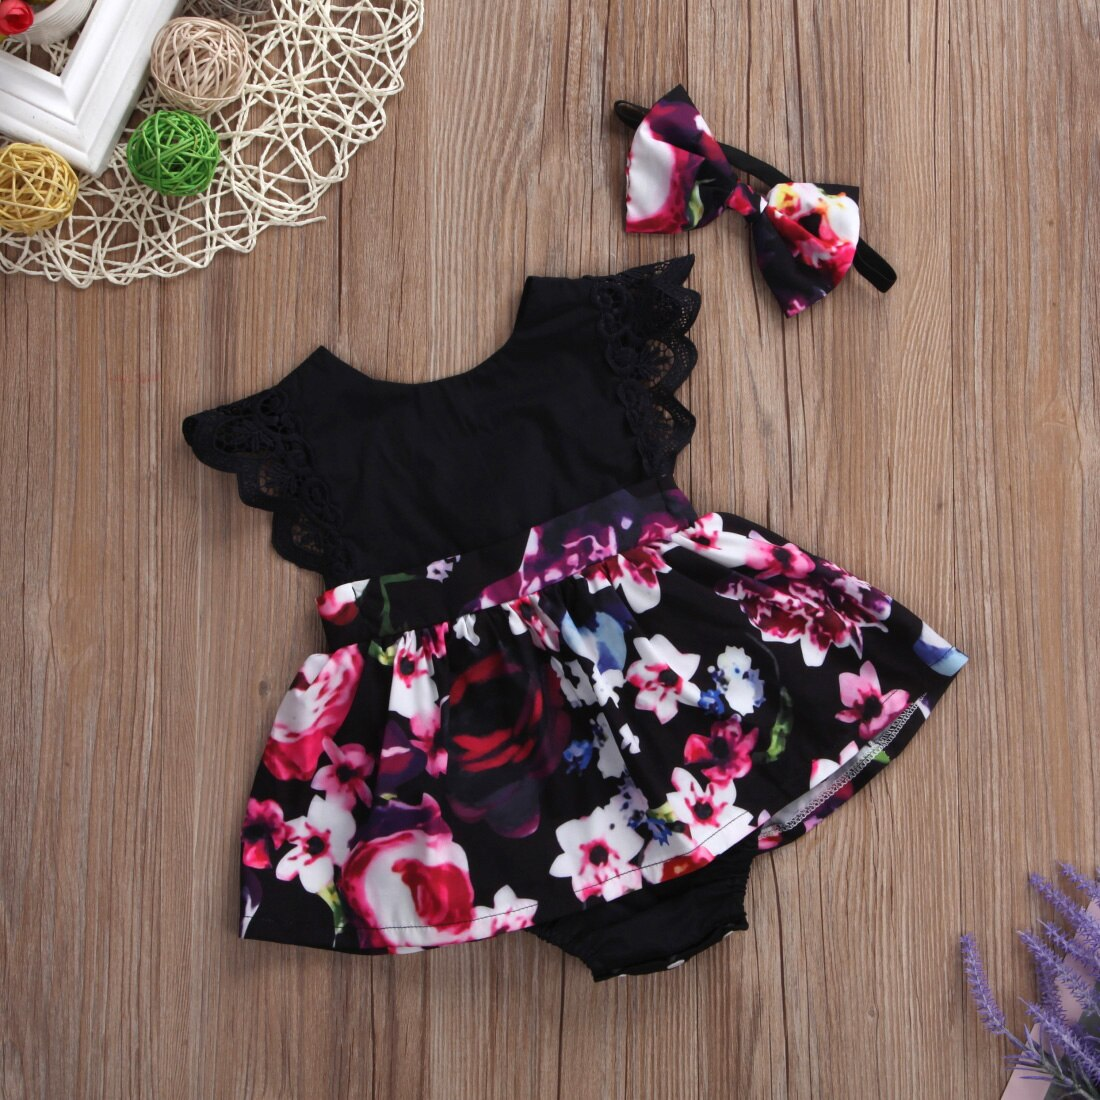 2018 FOCUSNORM Newborn Baby Infant Girl Romper Tutu Dress Headband Floral Outfits Party Dress 3